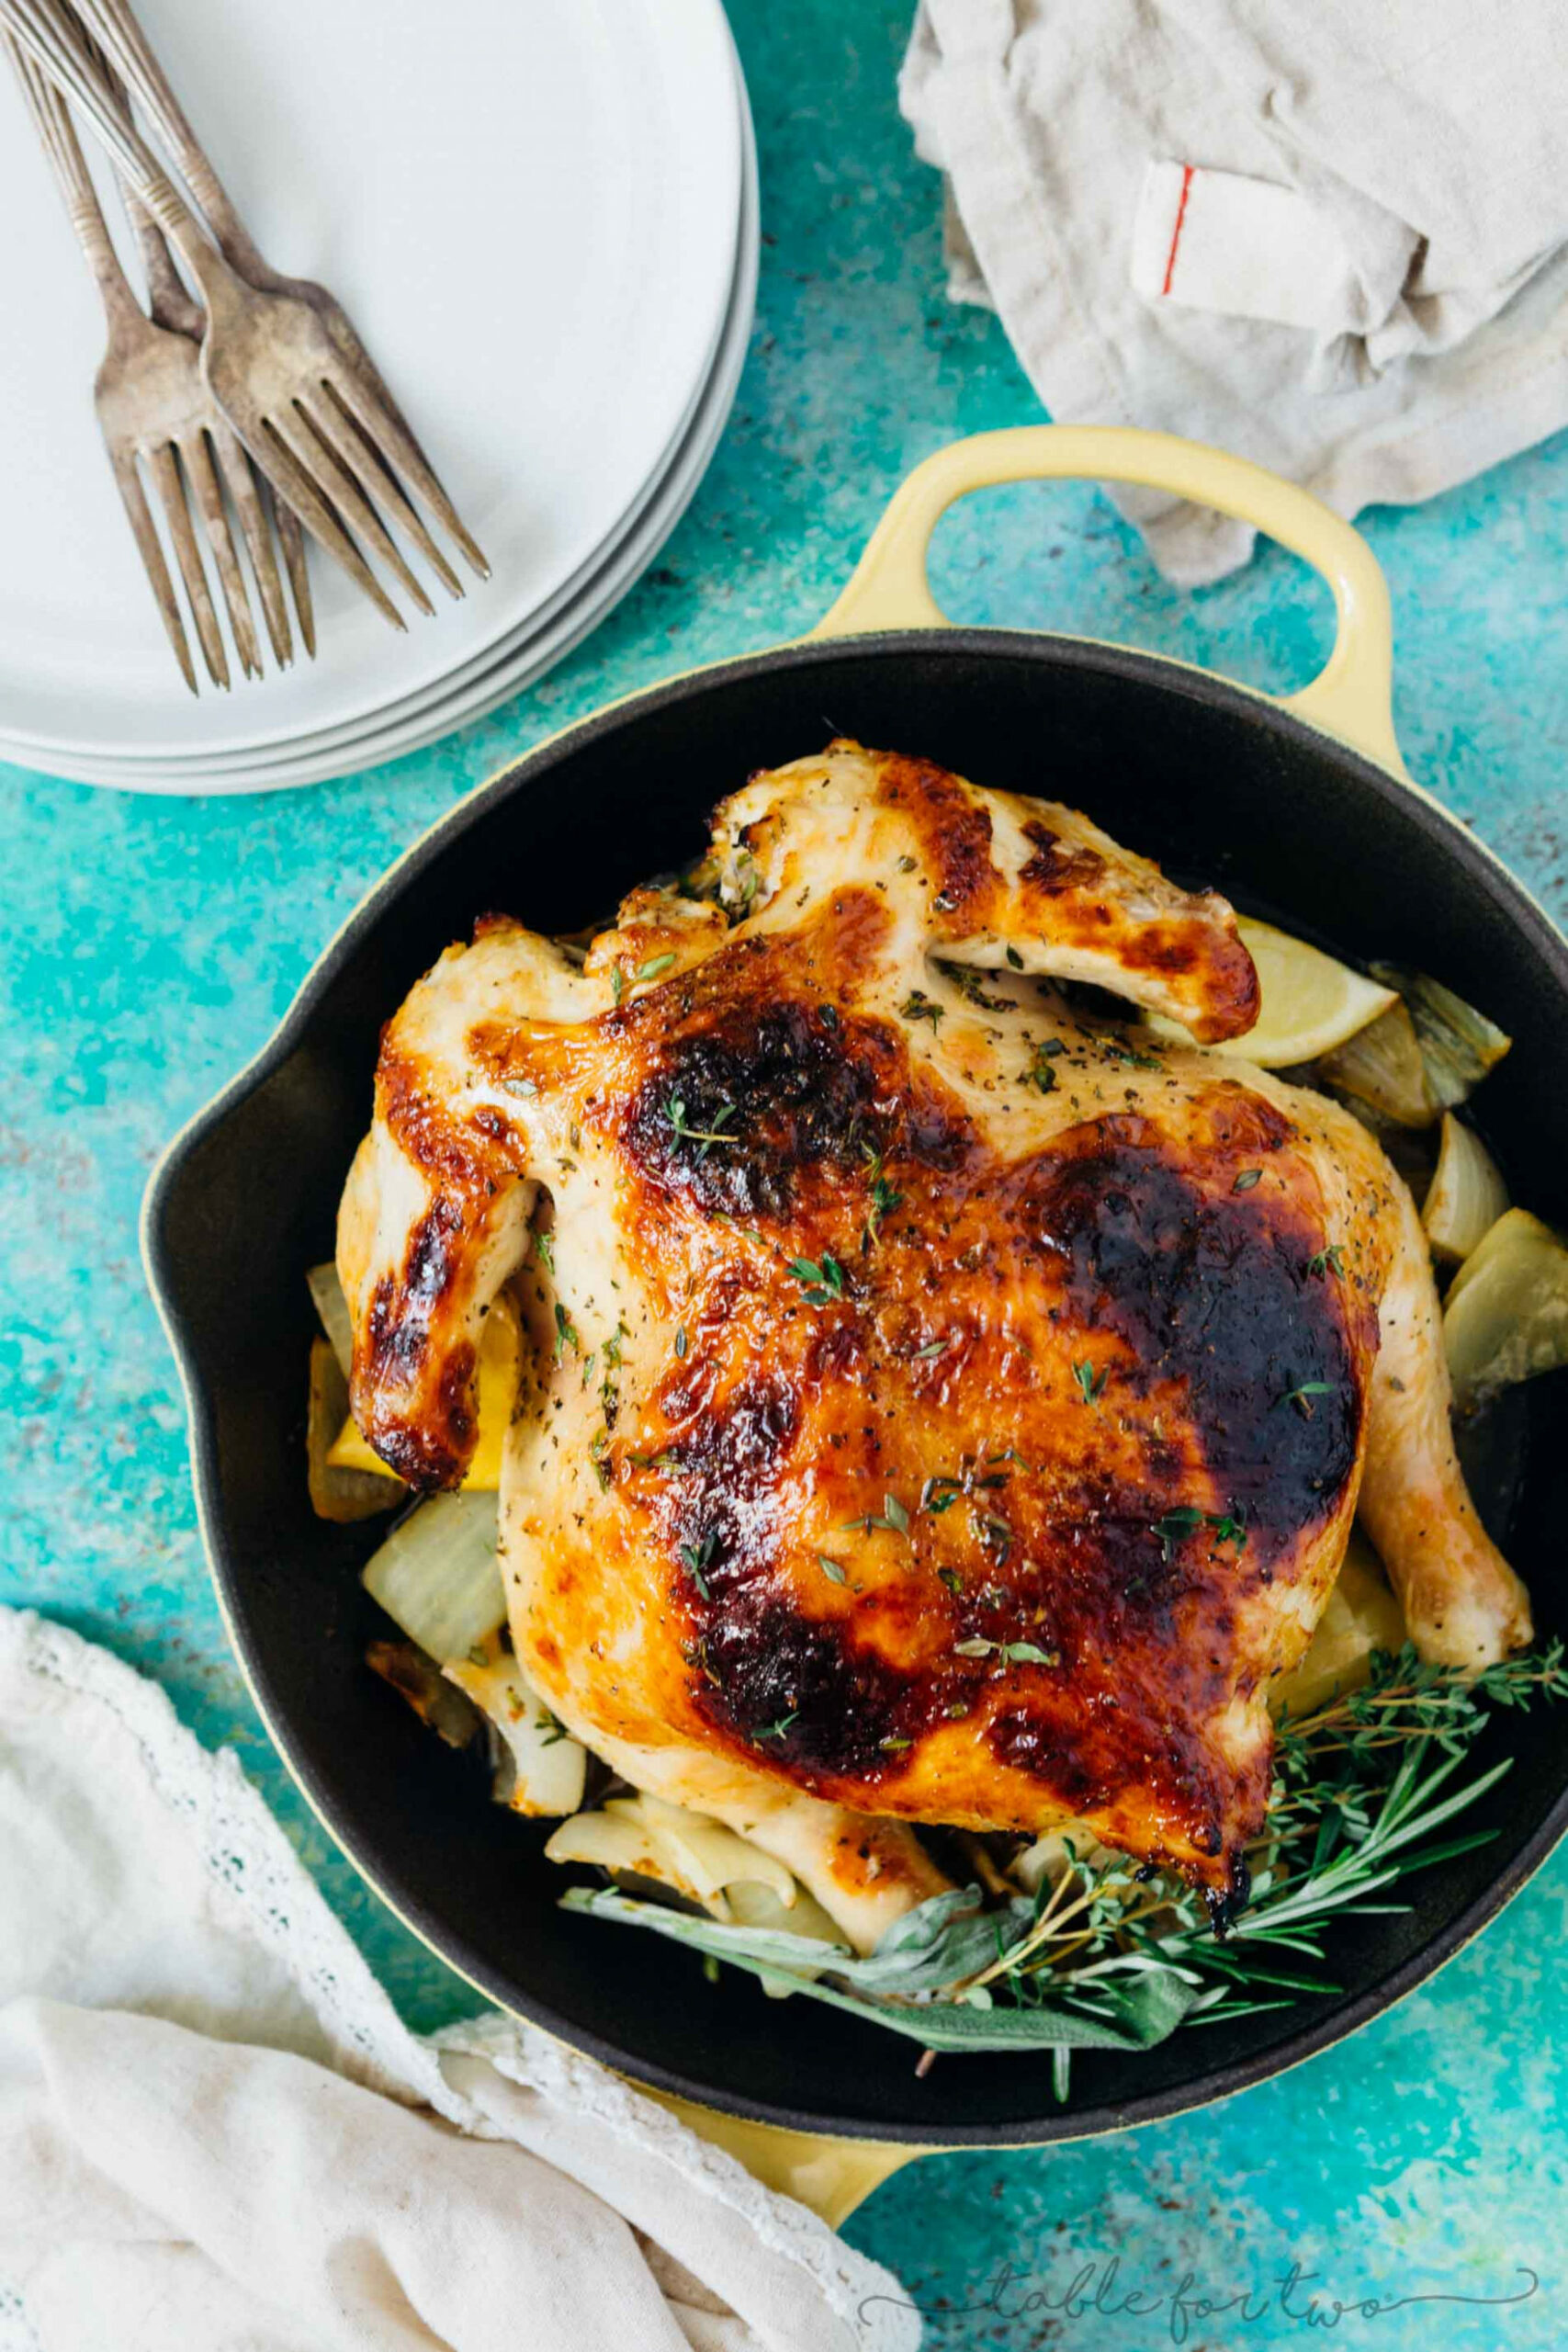 Pressure Cooker Honey Butter And Herb Roasted Chicken - Recipes Pressure Cooker Chicken